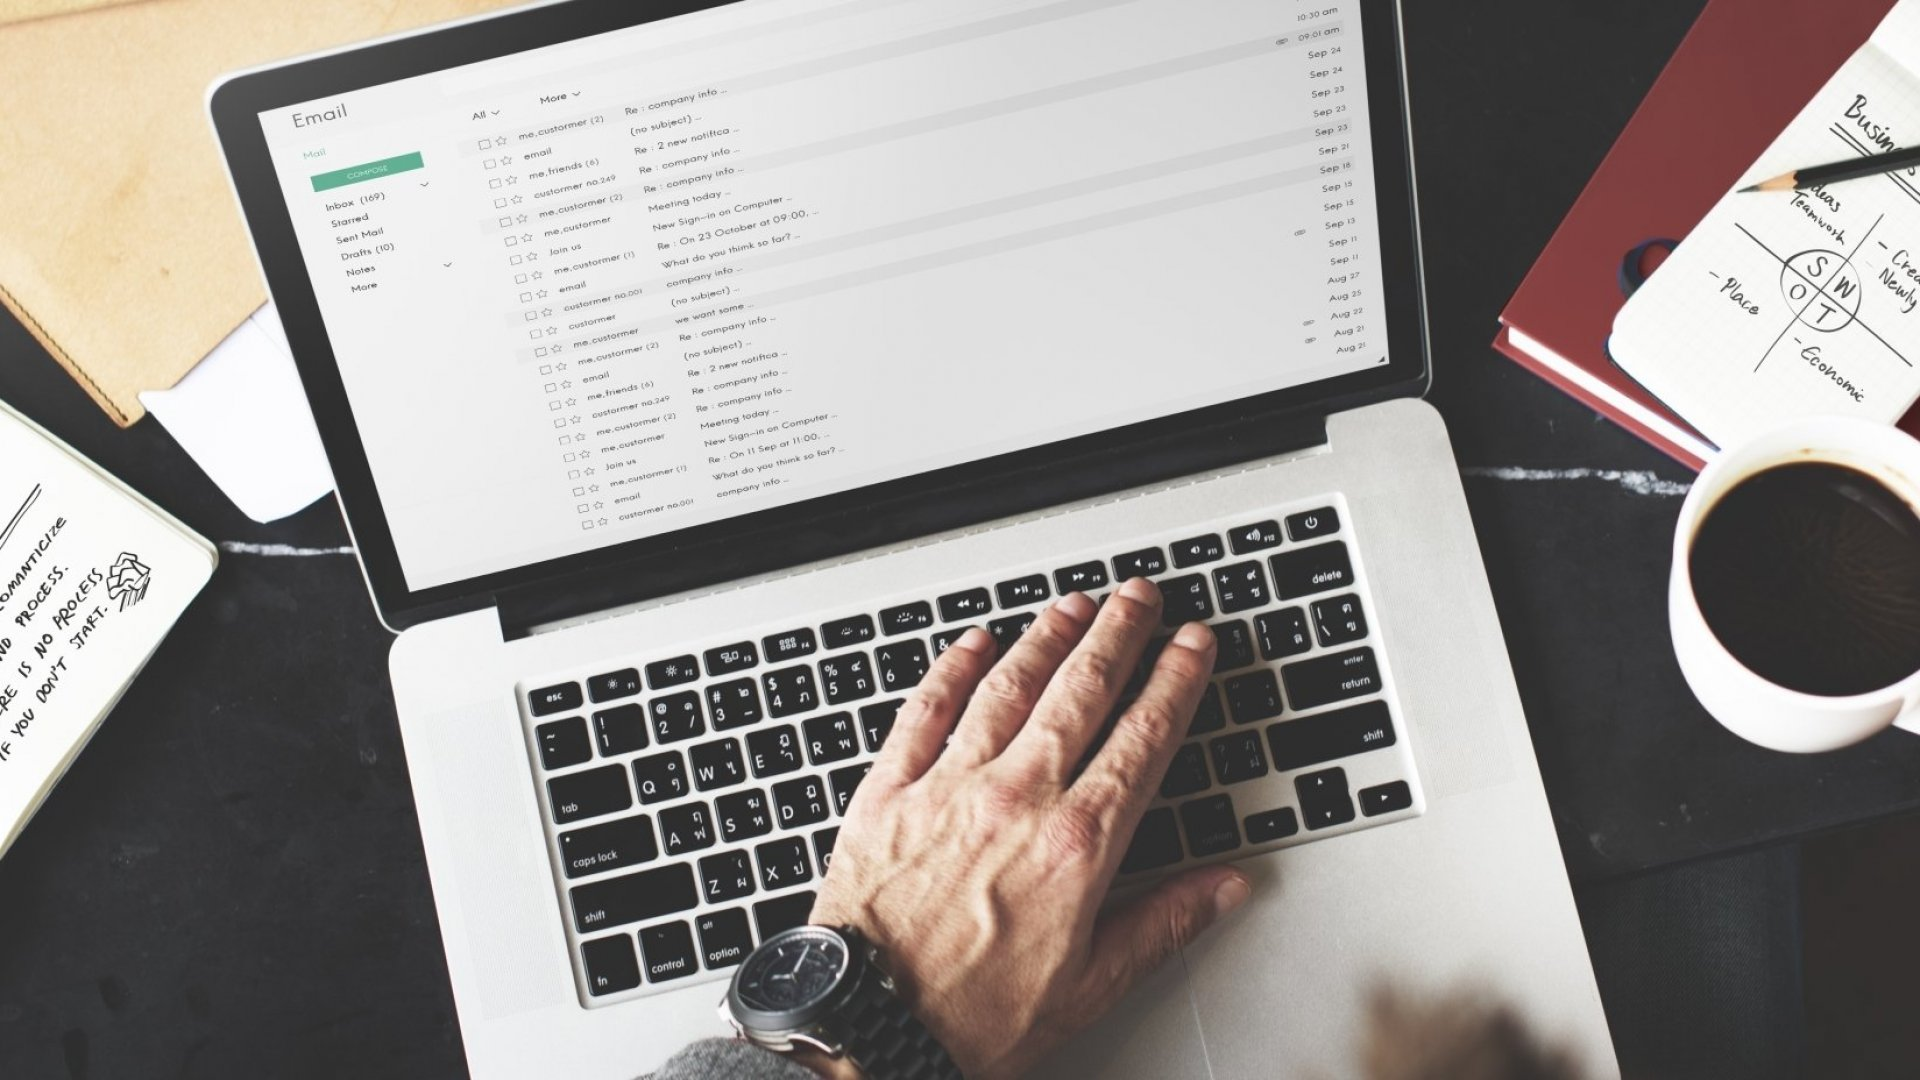 You Probably Waste 4 Hours a Day on Email. 5 Tools to Cut That in Half